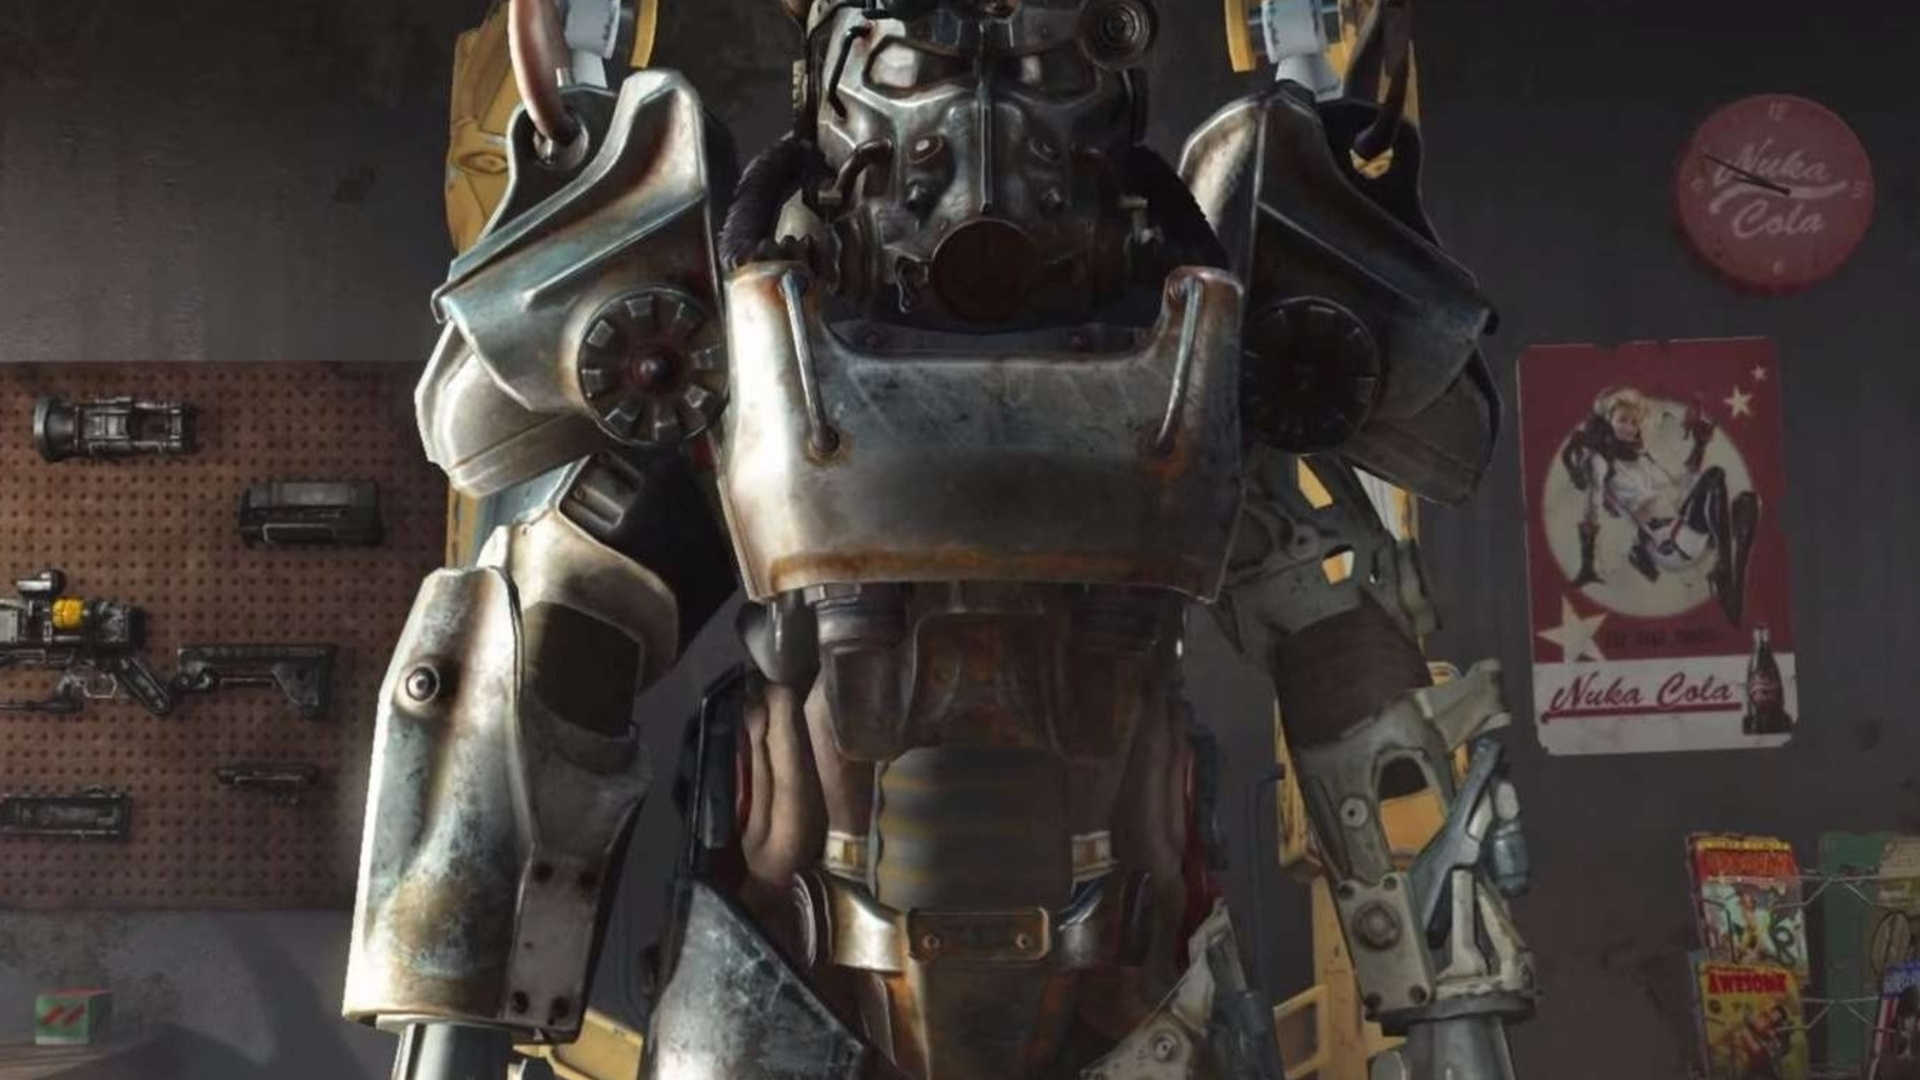 E3 Predictions - Fallout 4, Assassin's Creed Syndicate and more